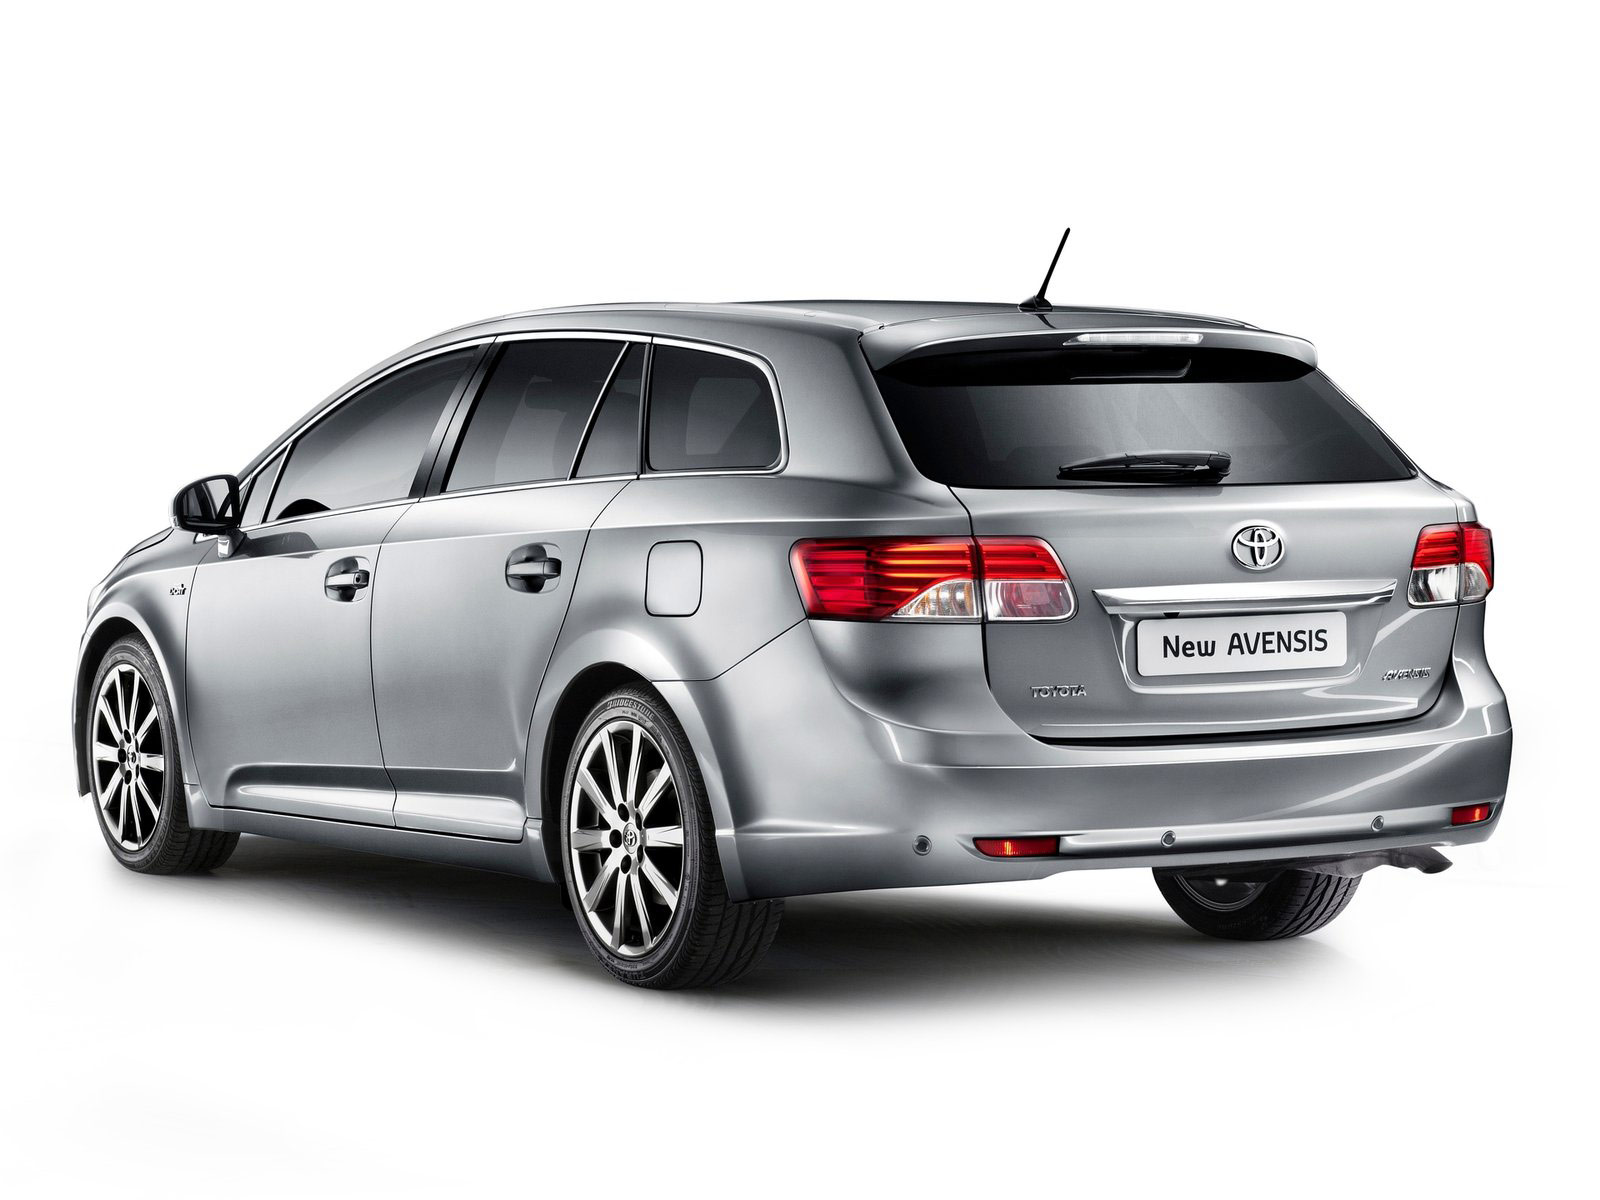 Affordable Auto Insurance >> 2012 TOYOTA Avensis Auto Accident Lawyers, photos